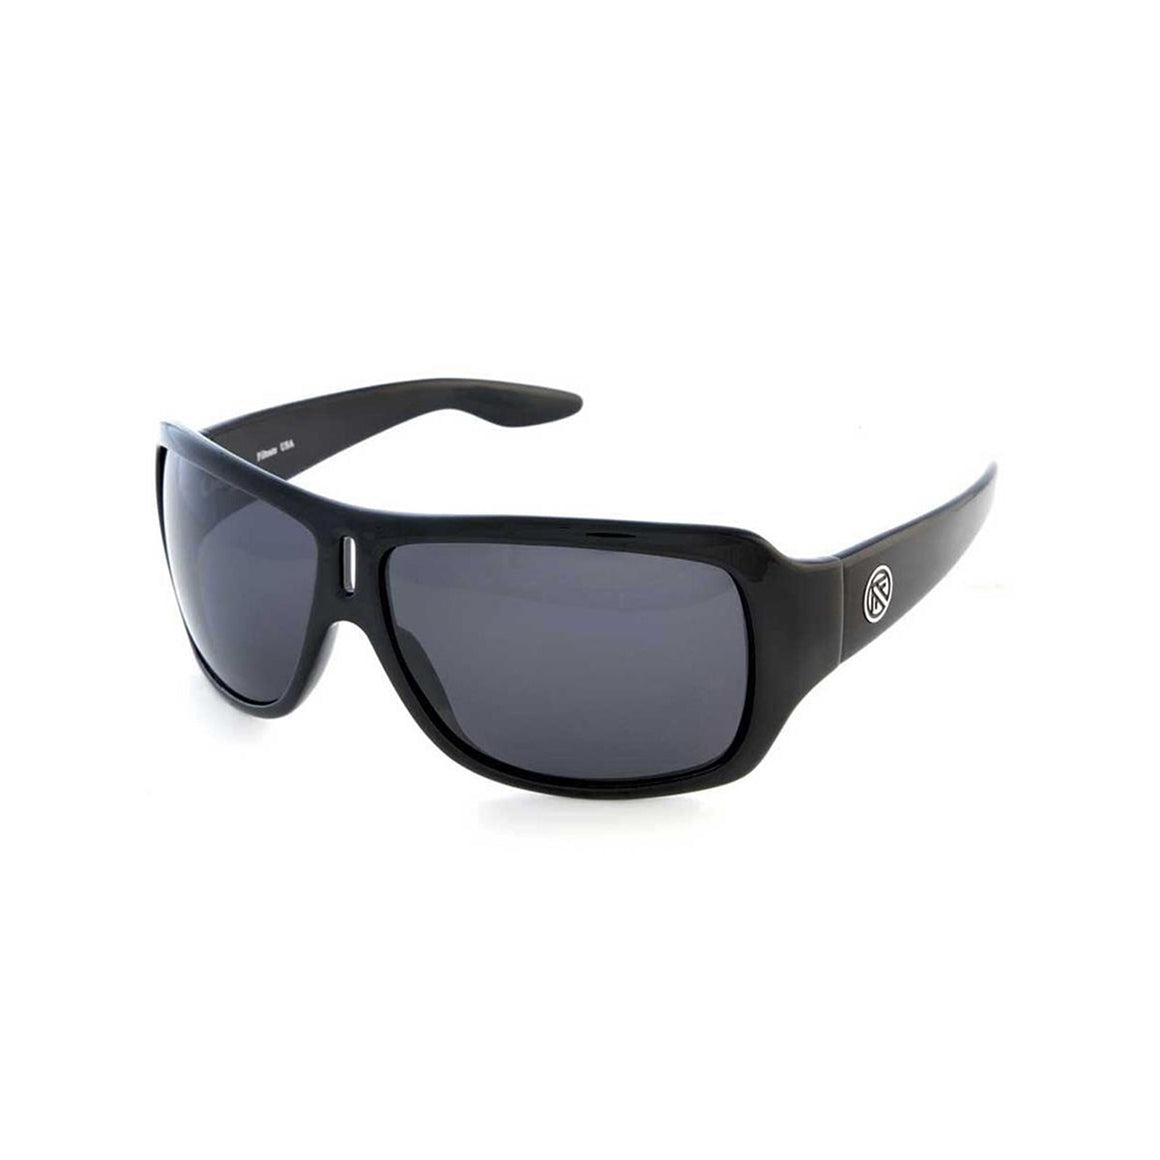 Filtrate Zephyr Black Polarized Unisex Sunglasses